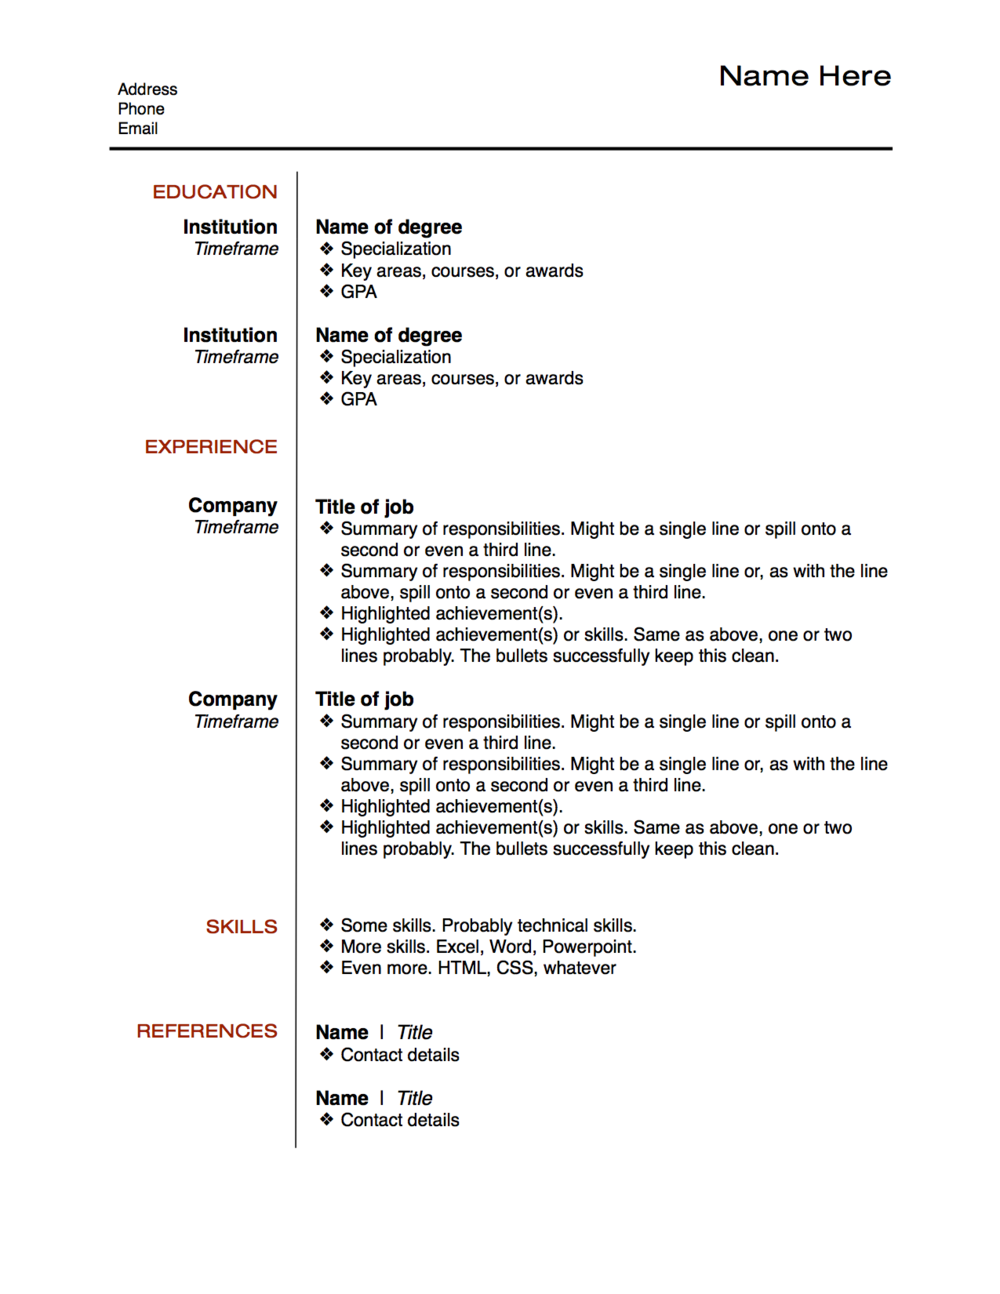 resume layout examplepng. Resume Example. Resume CV Cover Letter